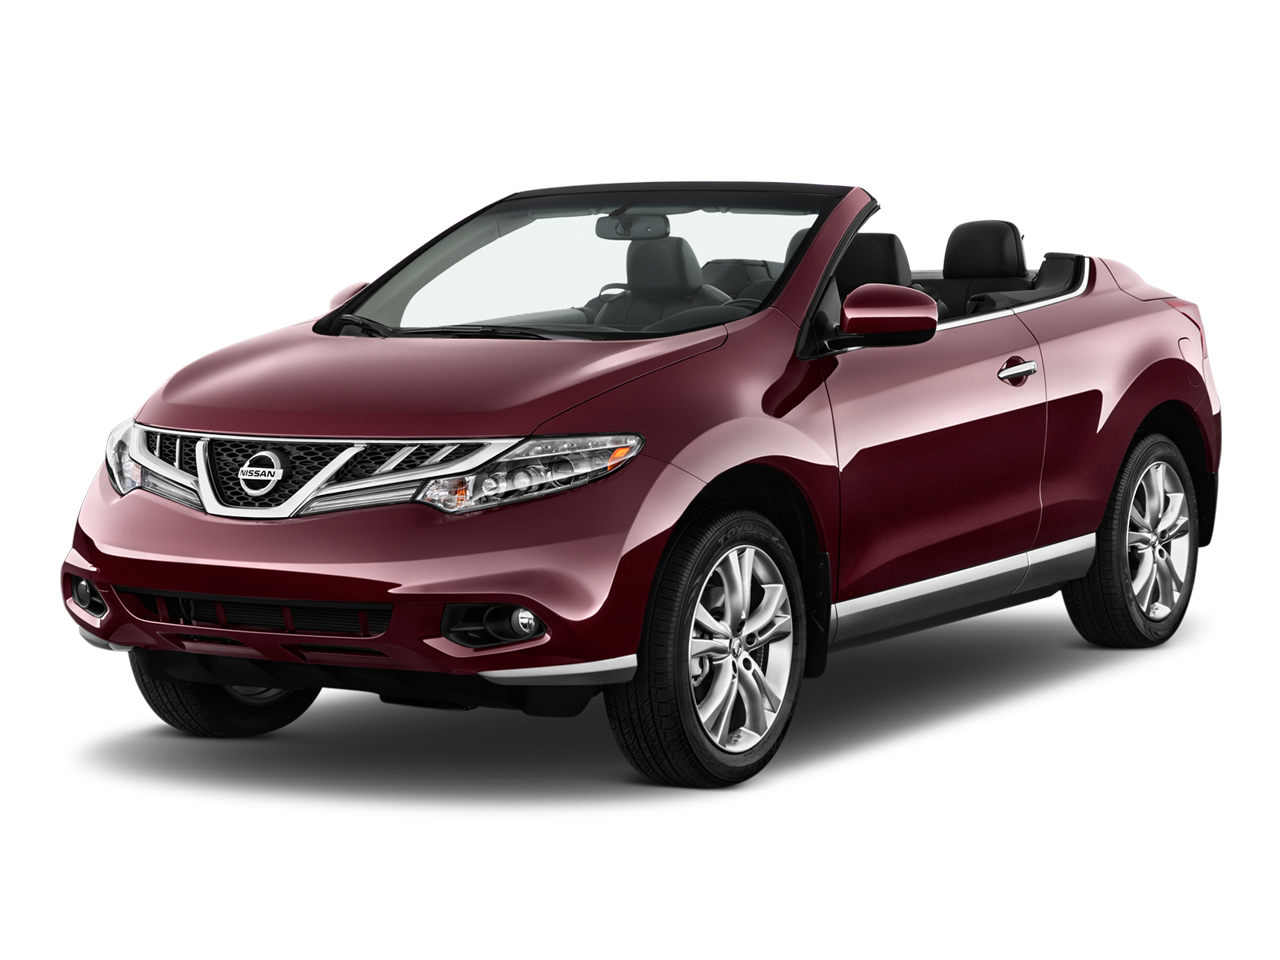 2011 Nissan Murano Crosscabriolet Review Ratings Specs